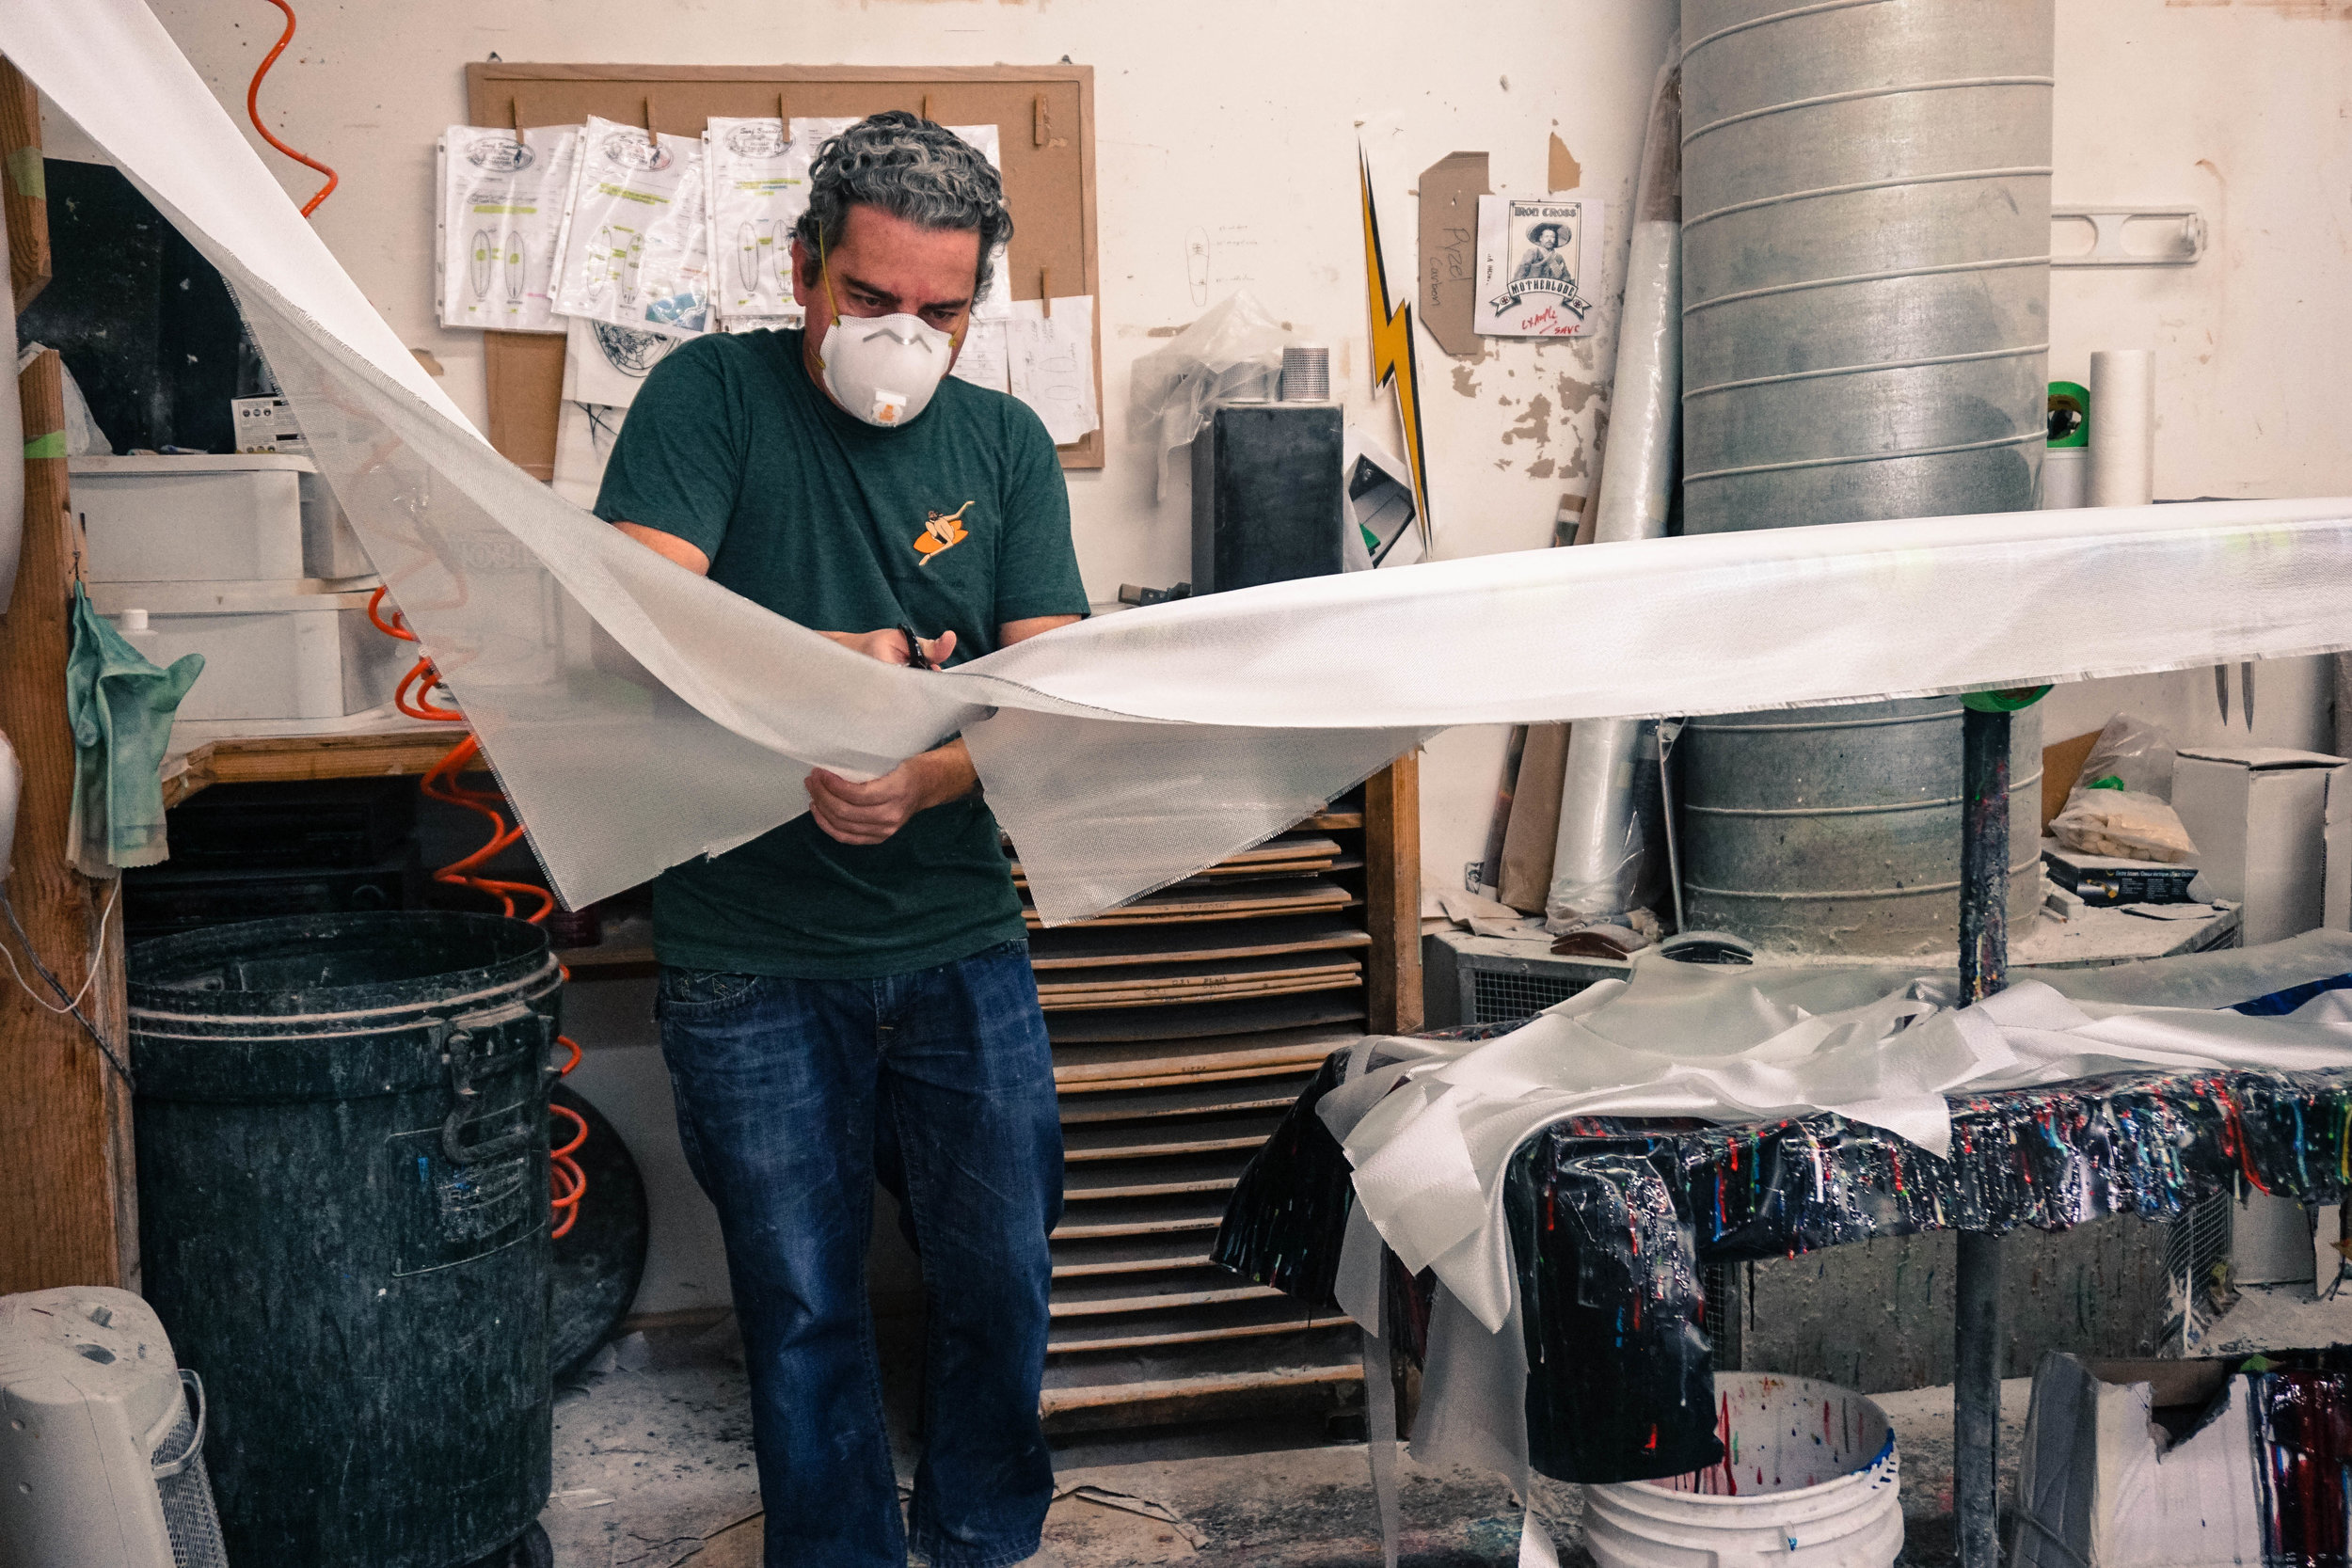 Lamination & Color - ...the key to your surfboard